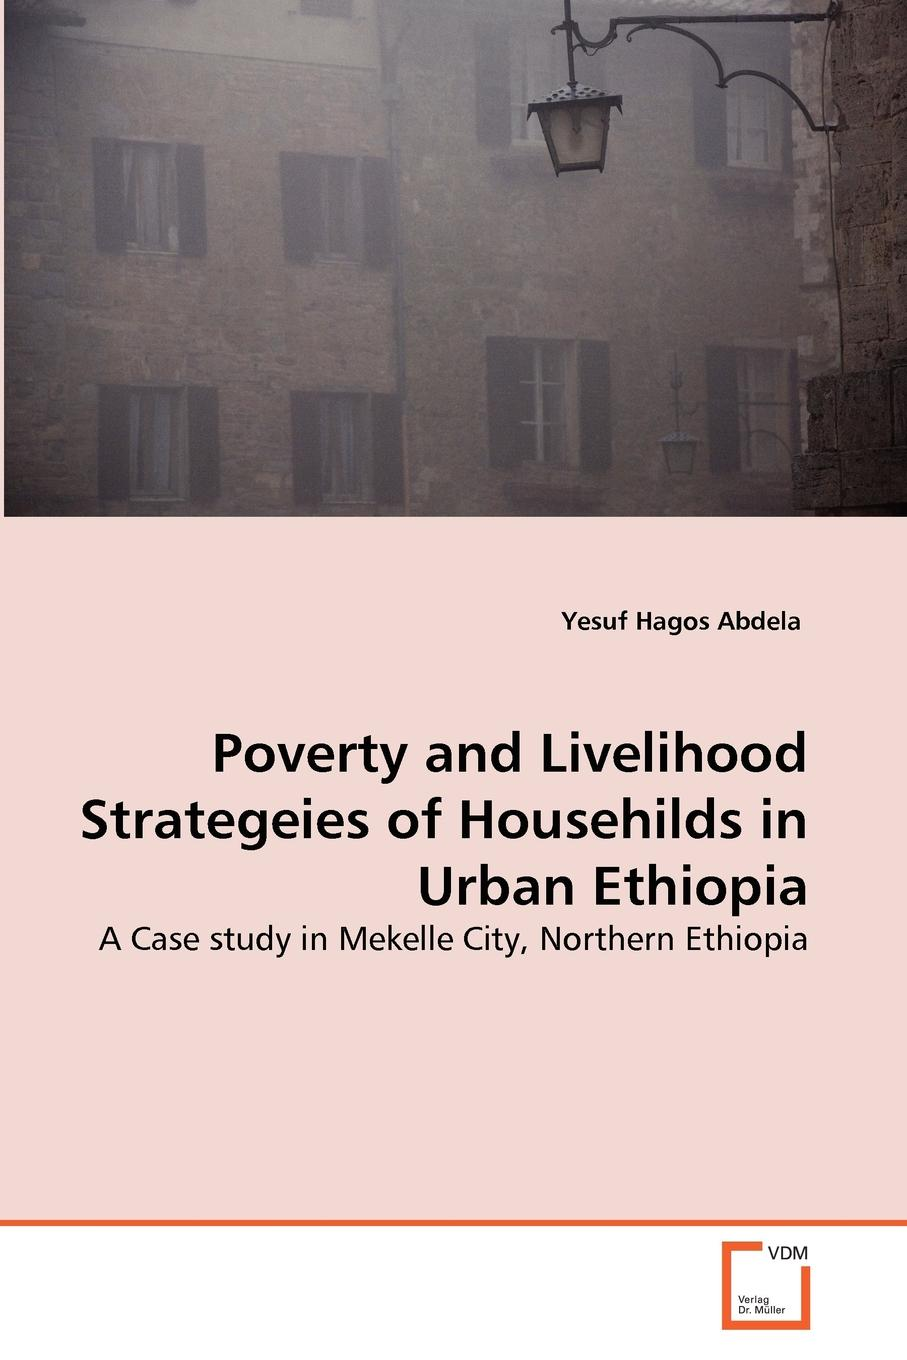 Yesuf Hagos Abdela Poverty and Livelihood Strategeies of Househilds in Urban Ethiopia недорго, оригинальная цена